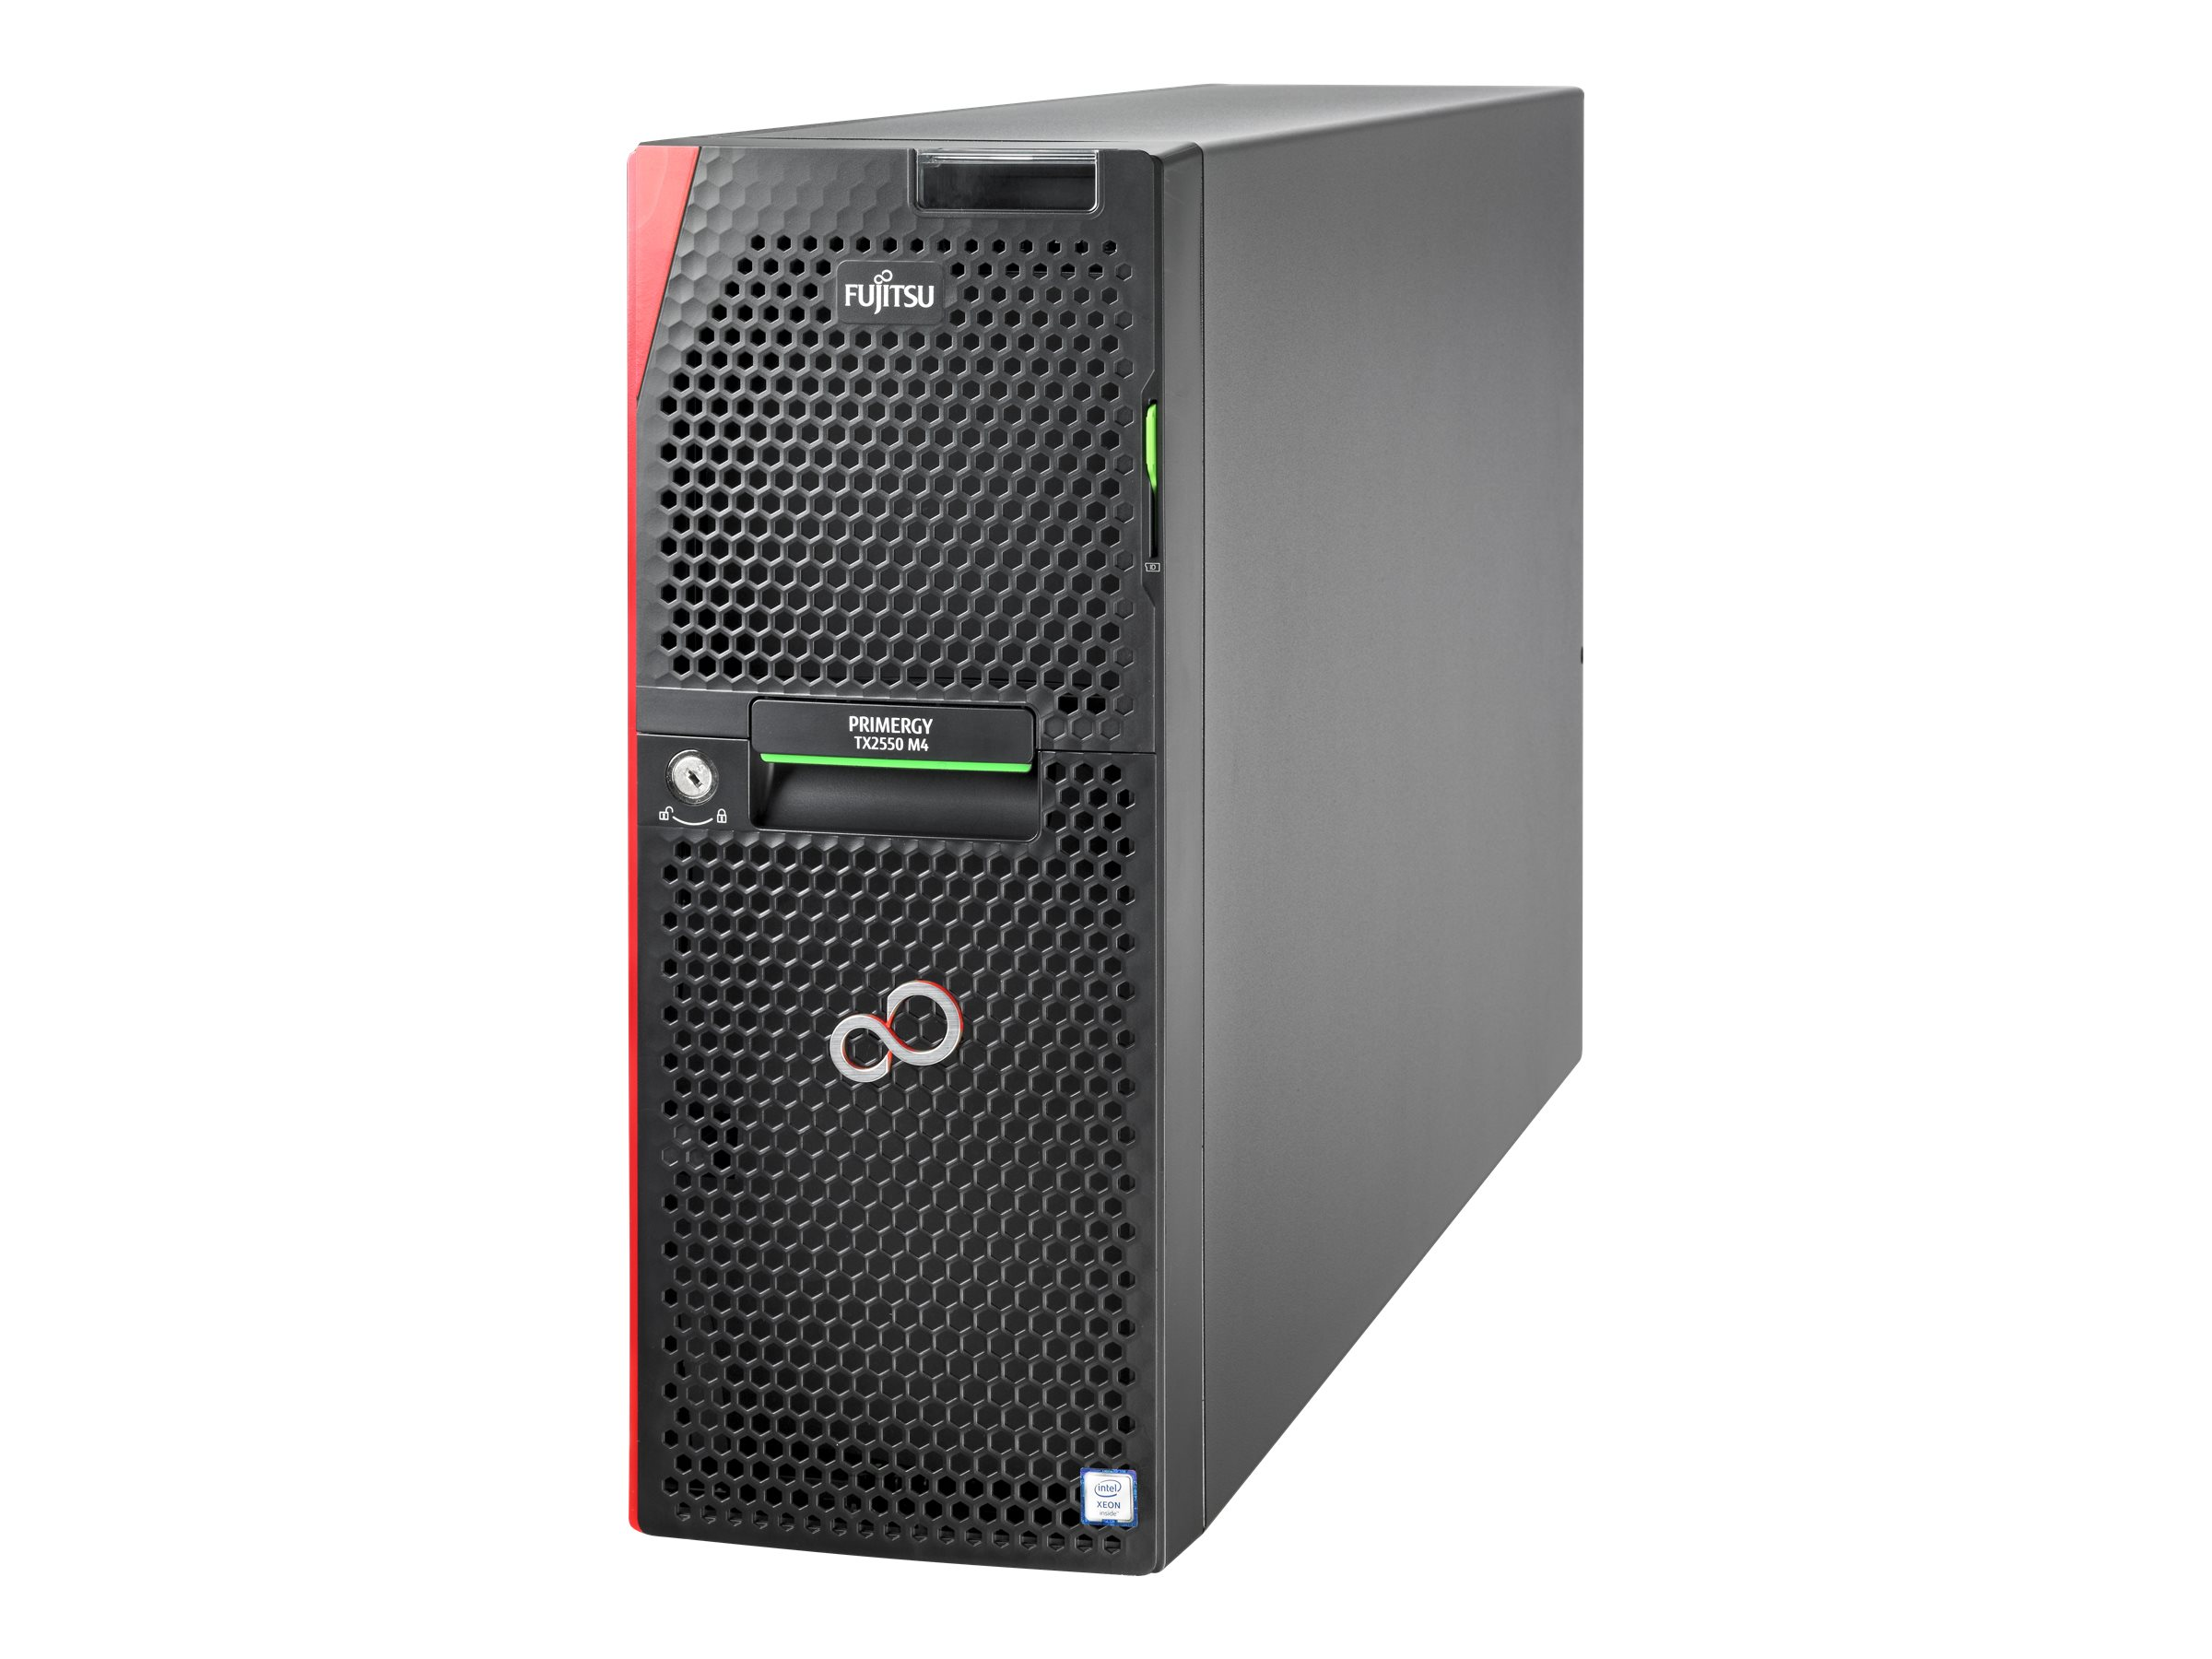 Fujitsu PRIMERGY TX2550 M4 - Server - Tower - 4U - zweiweg - 1 x Xeon Silver 4108 / 1.8 GHz - RAM 16 GB - SATA - Hot-Swa